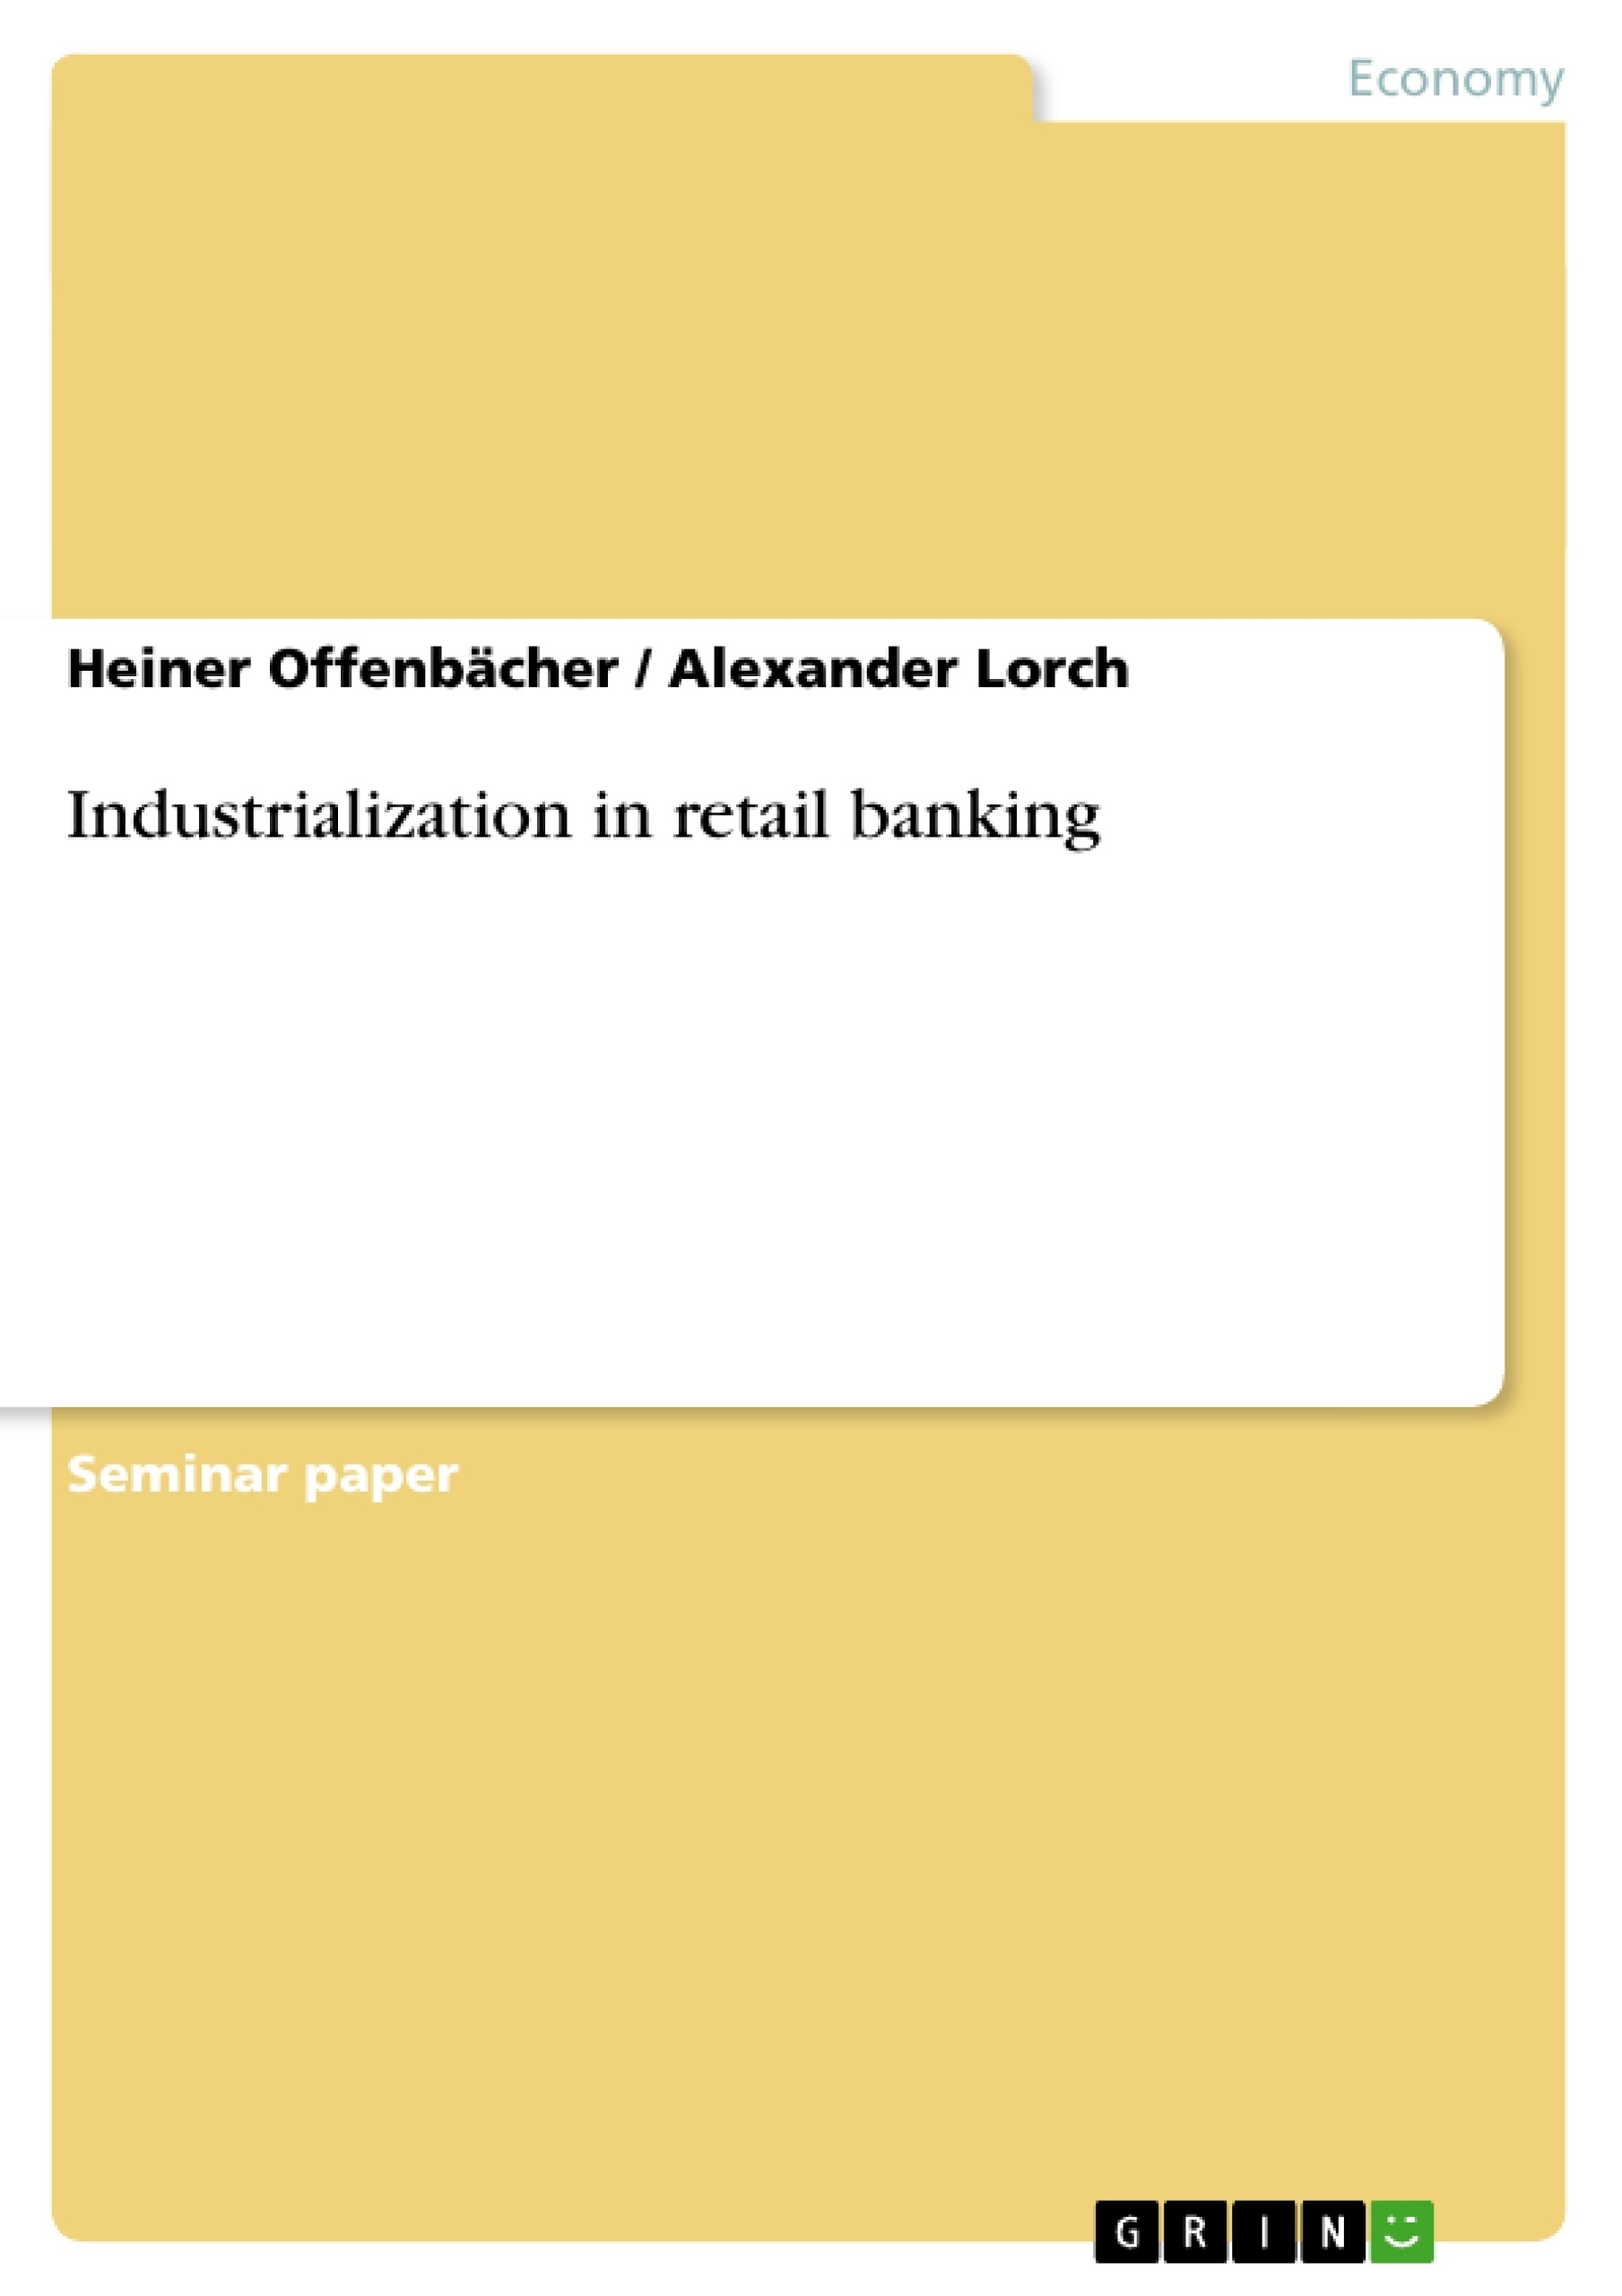 Title: Industrialization in retail banking